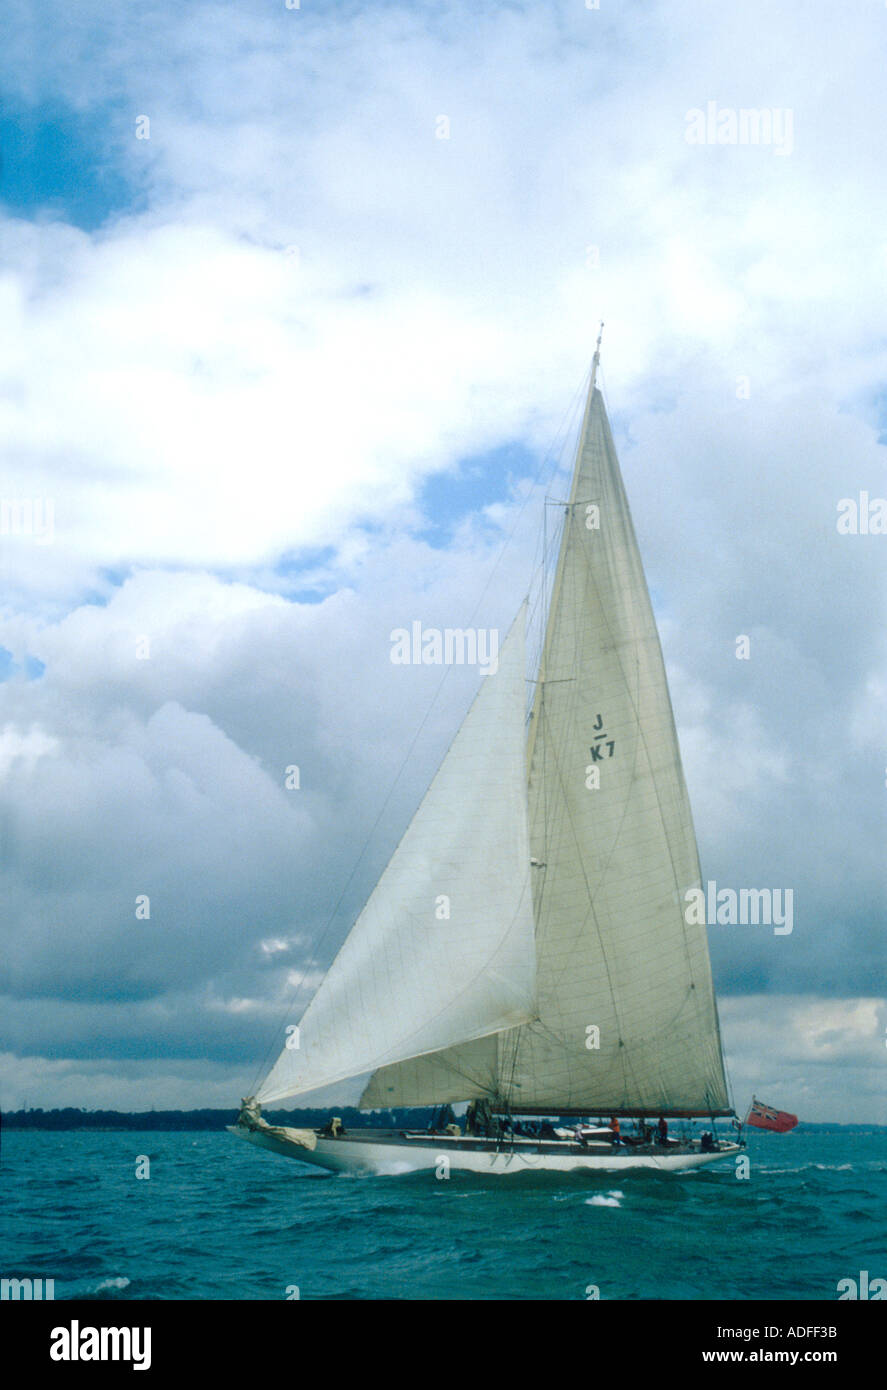 The 1933 J class yacht Velsheda in the Solent Hampshire England UK Stock Photo